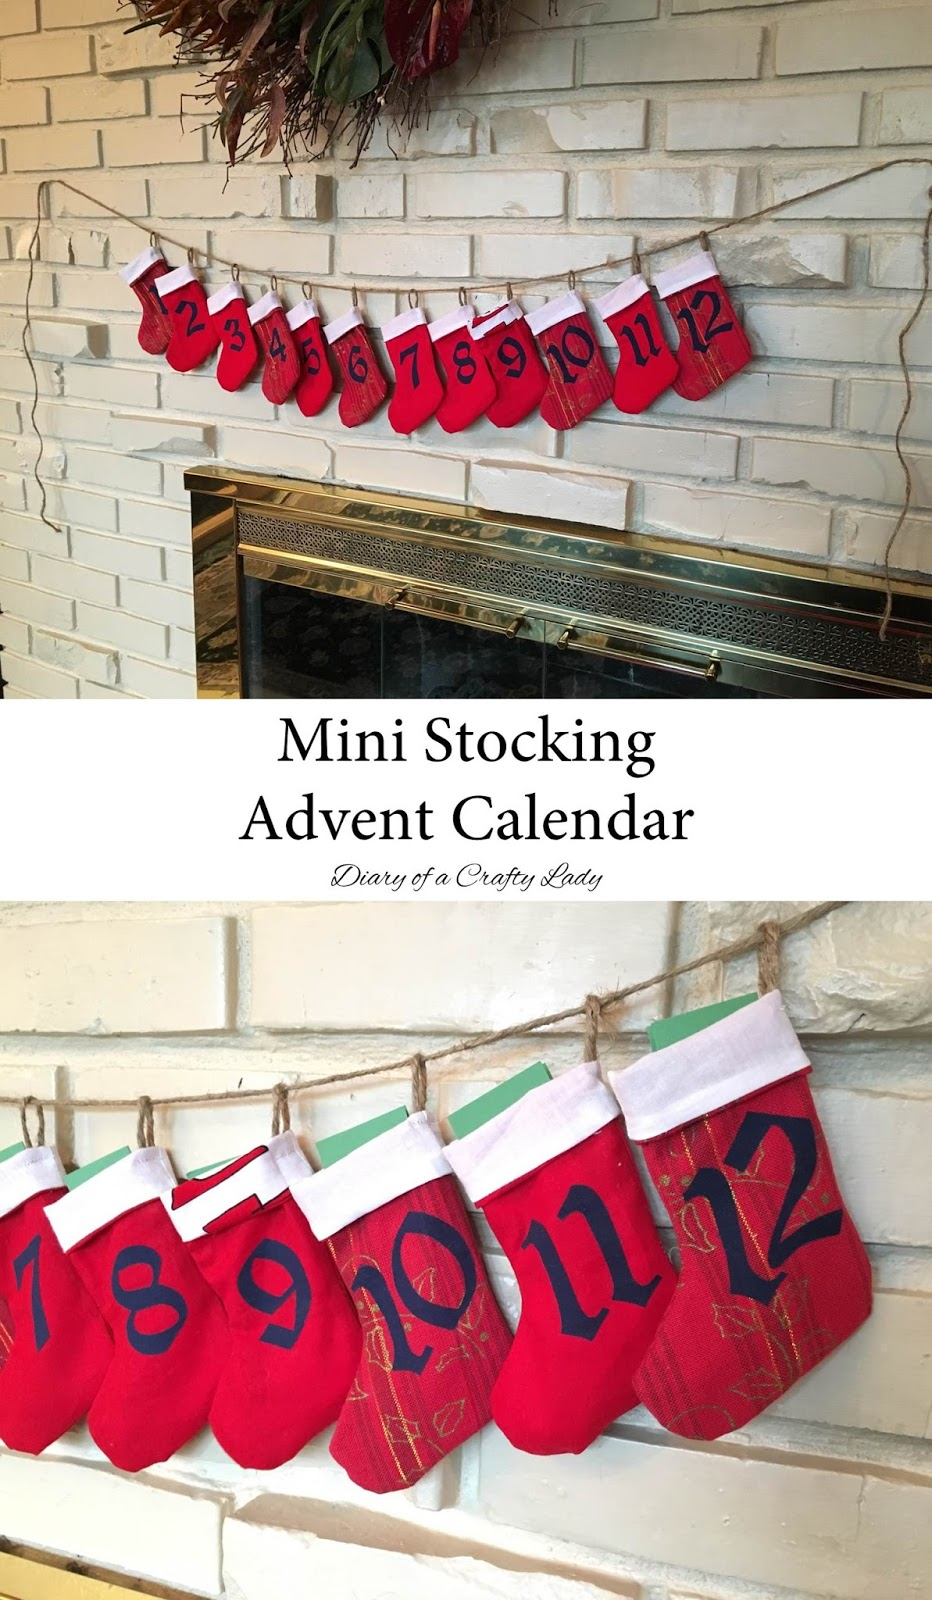 diary of a crafty lady mini stocking advent calendar. Black Bedroom Furniture Sets. Home Design Ideas